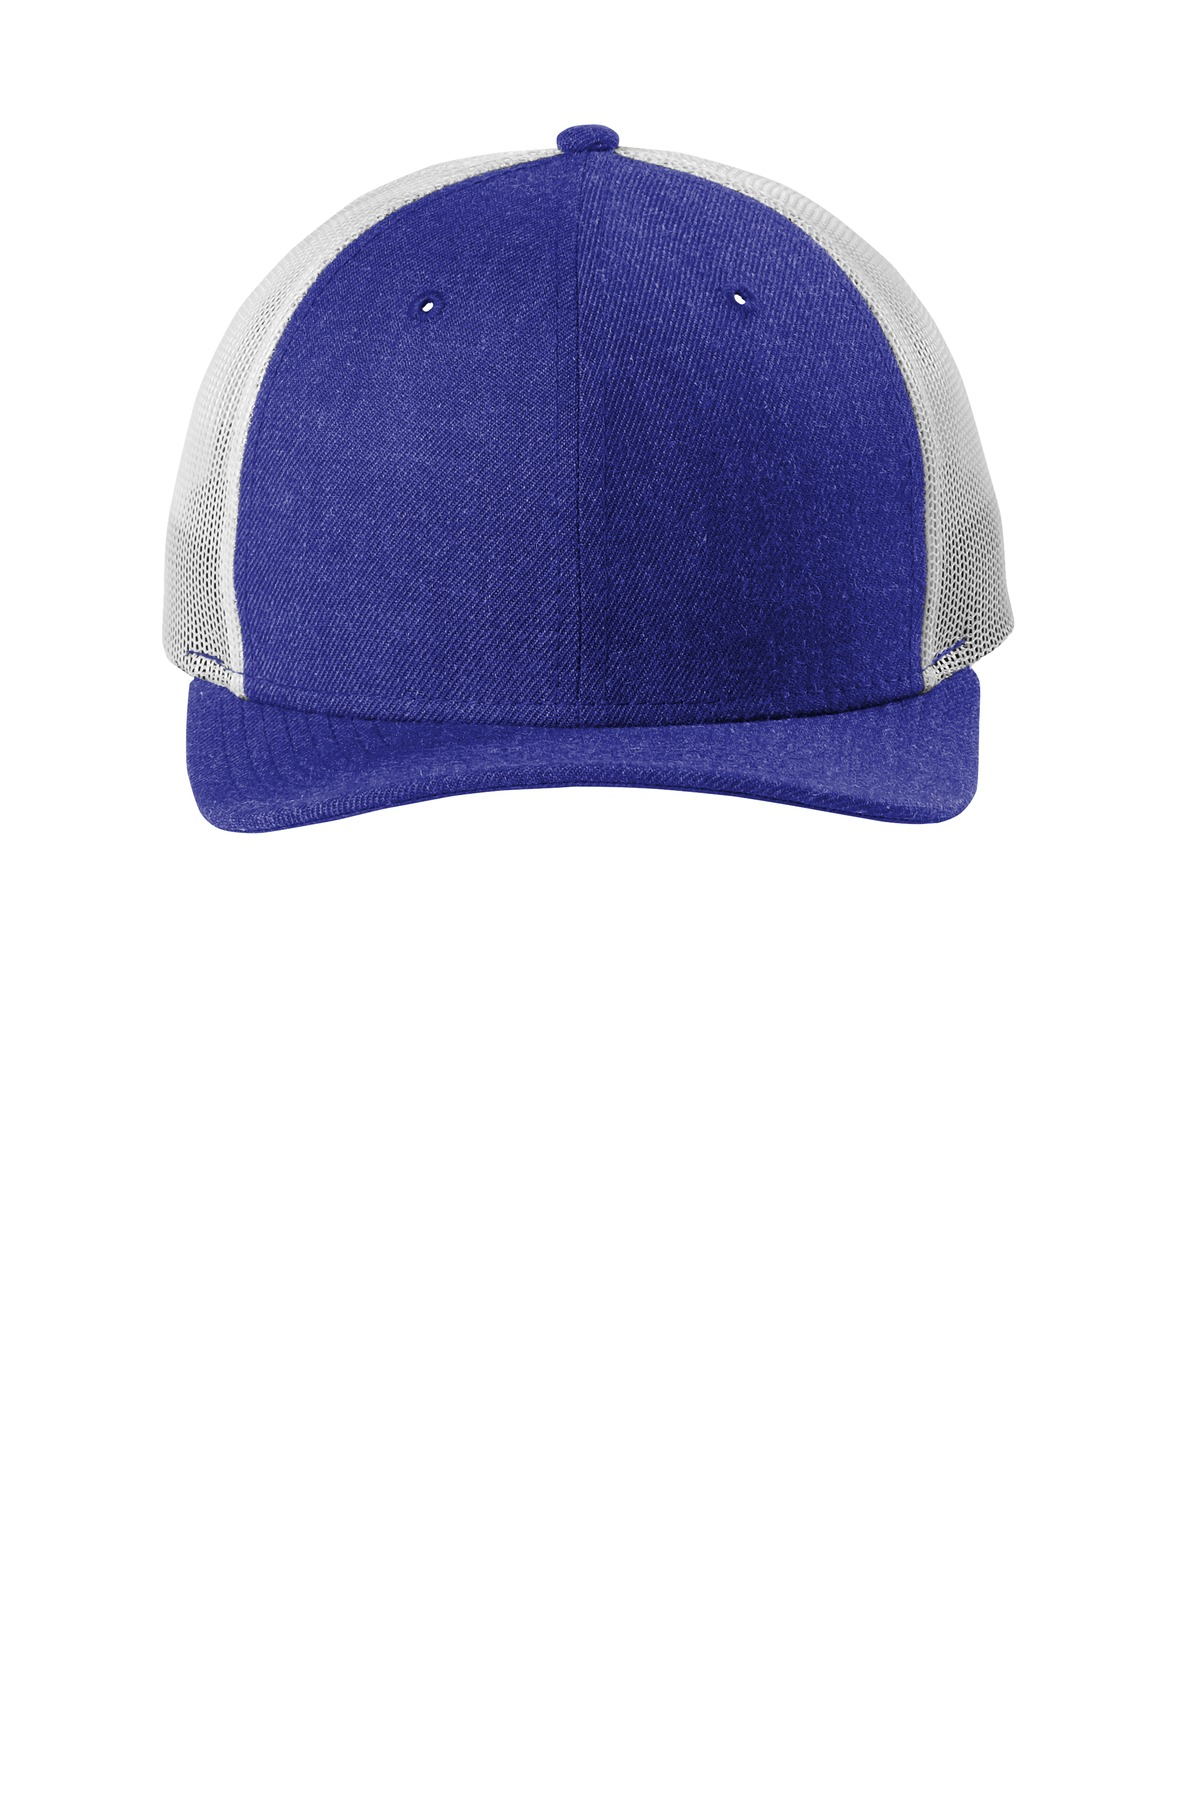 New Era  ®   Snapback Low Profile Trucker Cap   NE207 - Heather Royal/ White